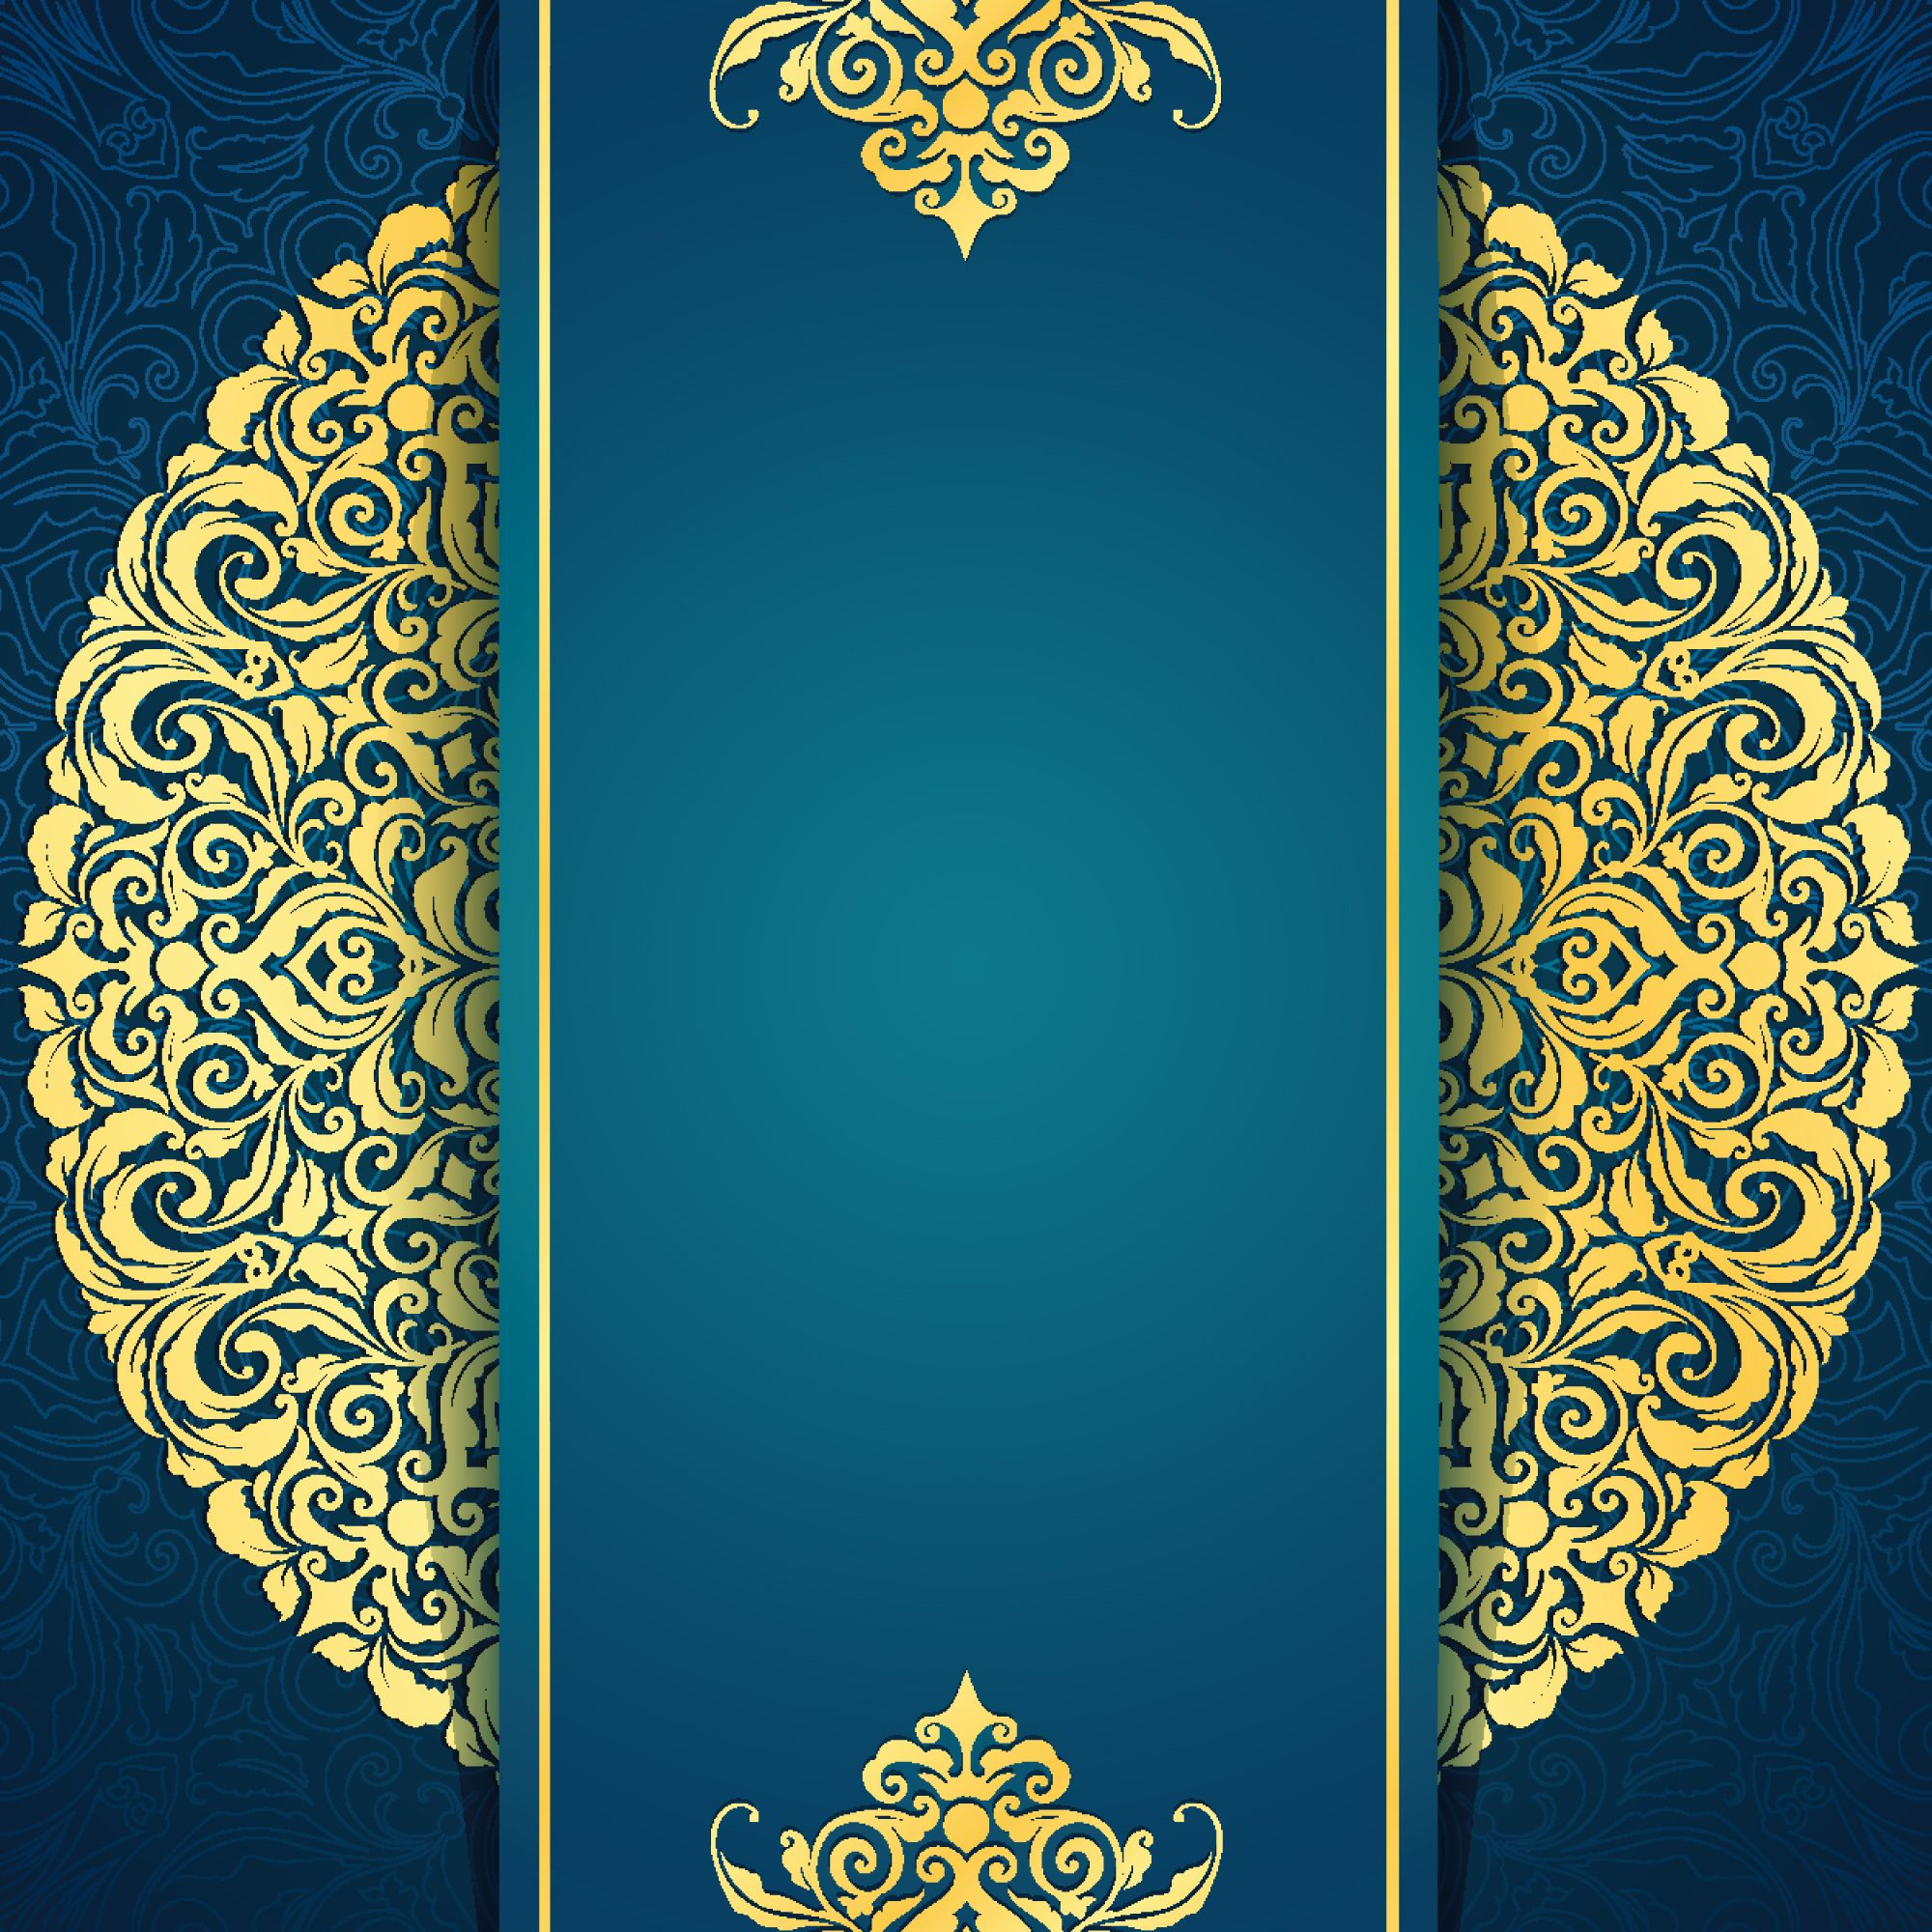 Background For Wedding Invitation: Continental Gold Invitation Background Material Vertical